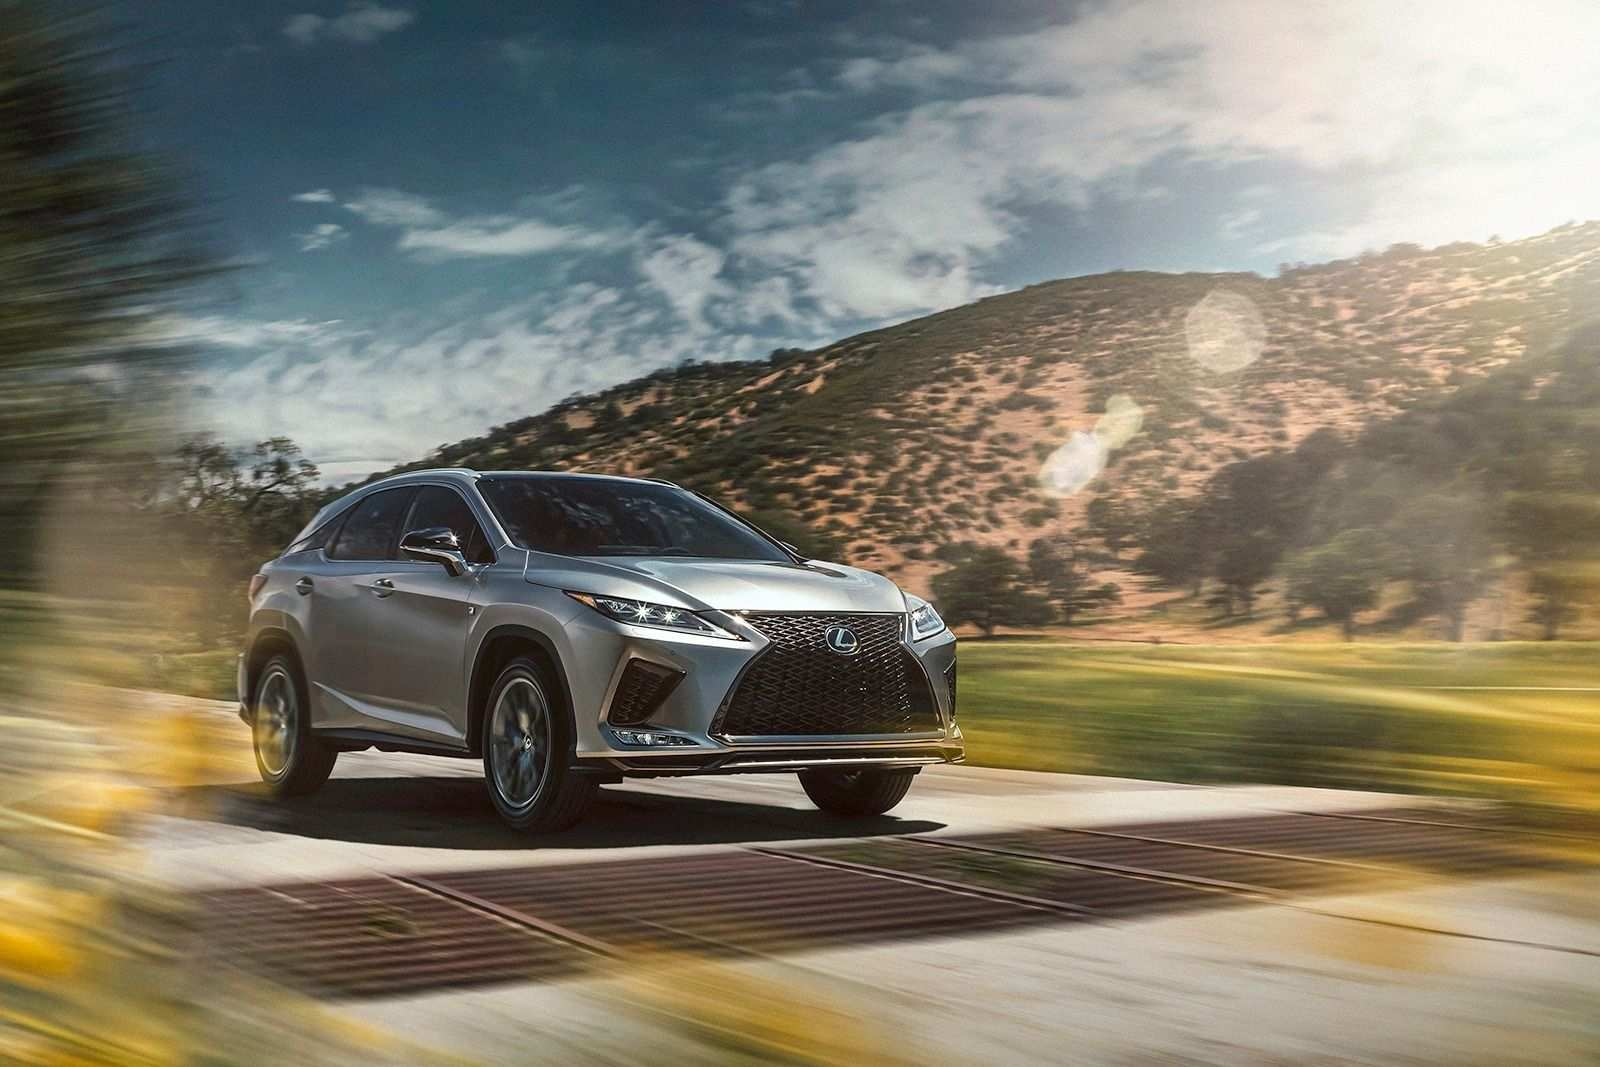 80 New Pictures Of 2020 Lexus Picture by Pictures Of 2020 Lexus